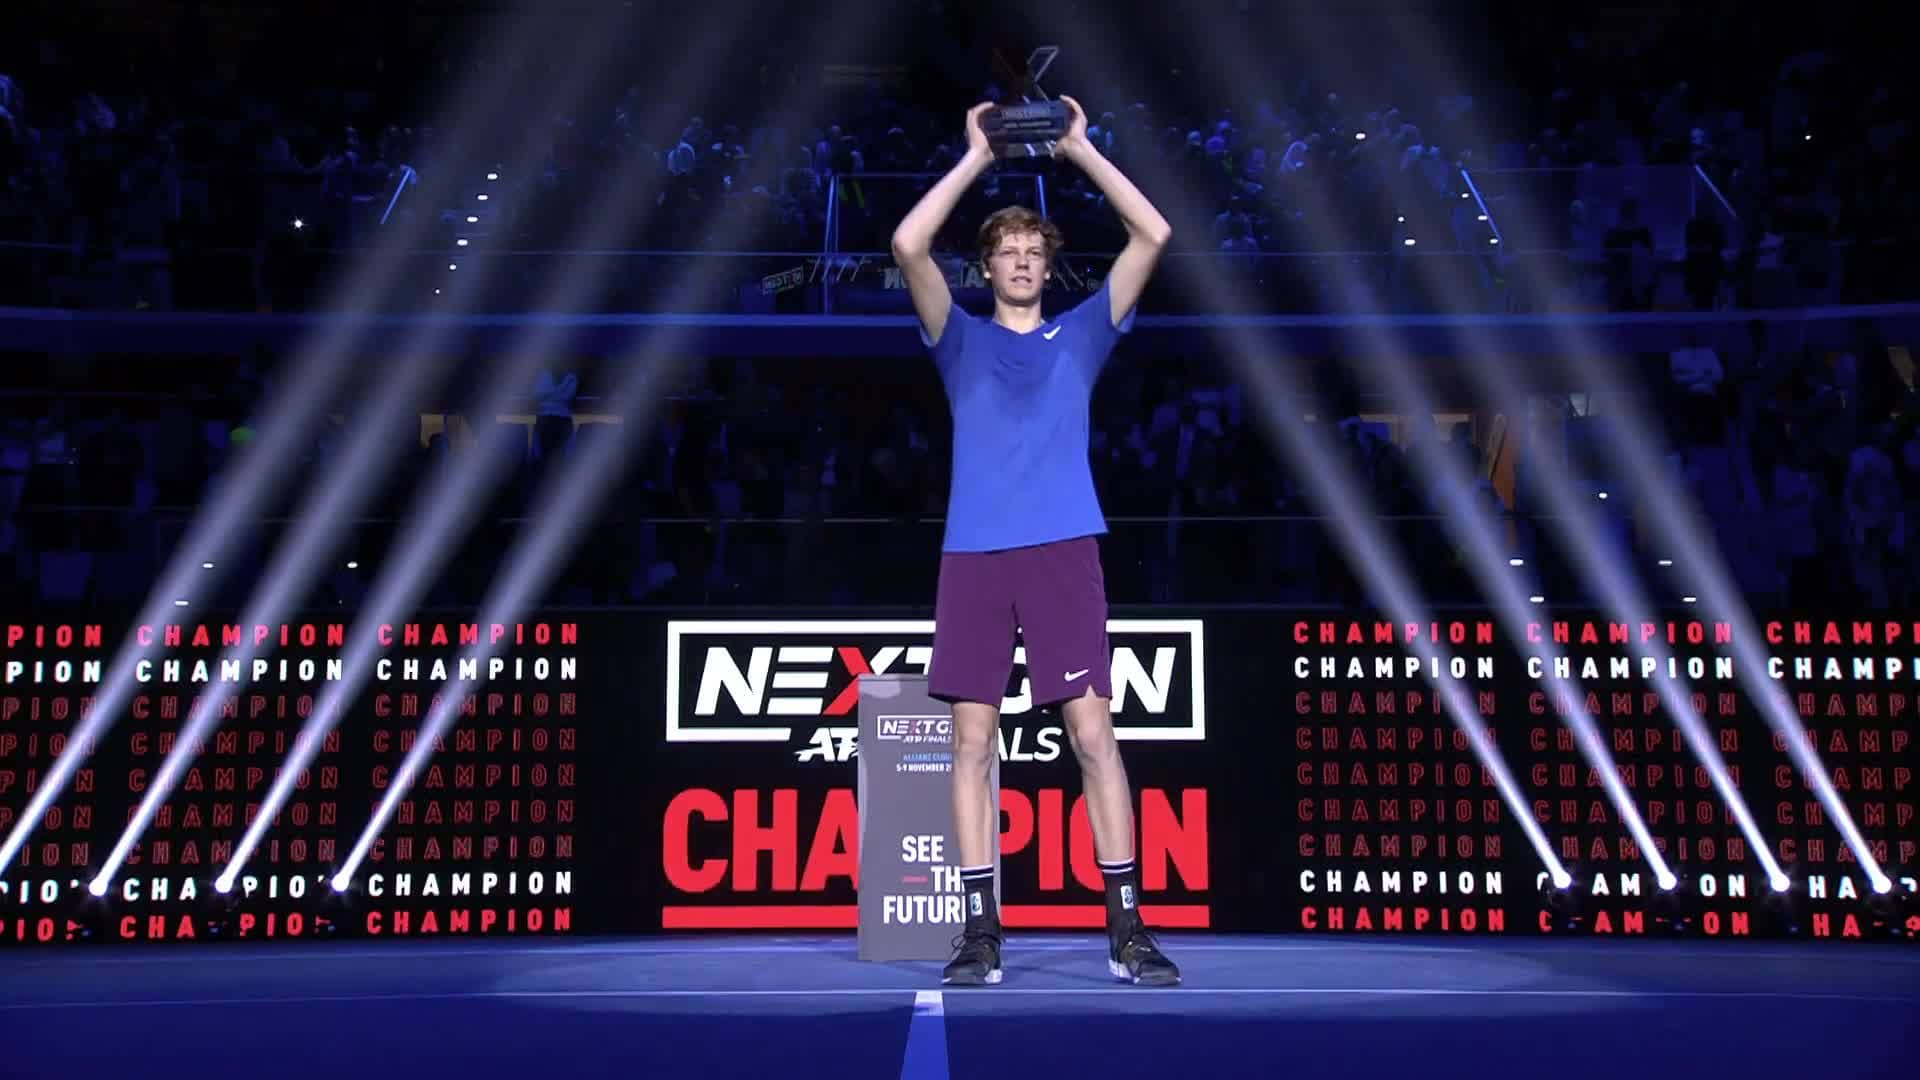 Jannik Sinner wins the 2019 Next Gen ATP Finals in Milan.